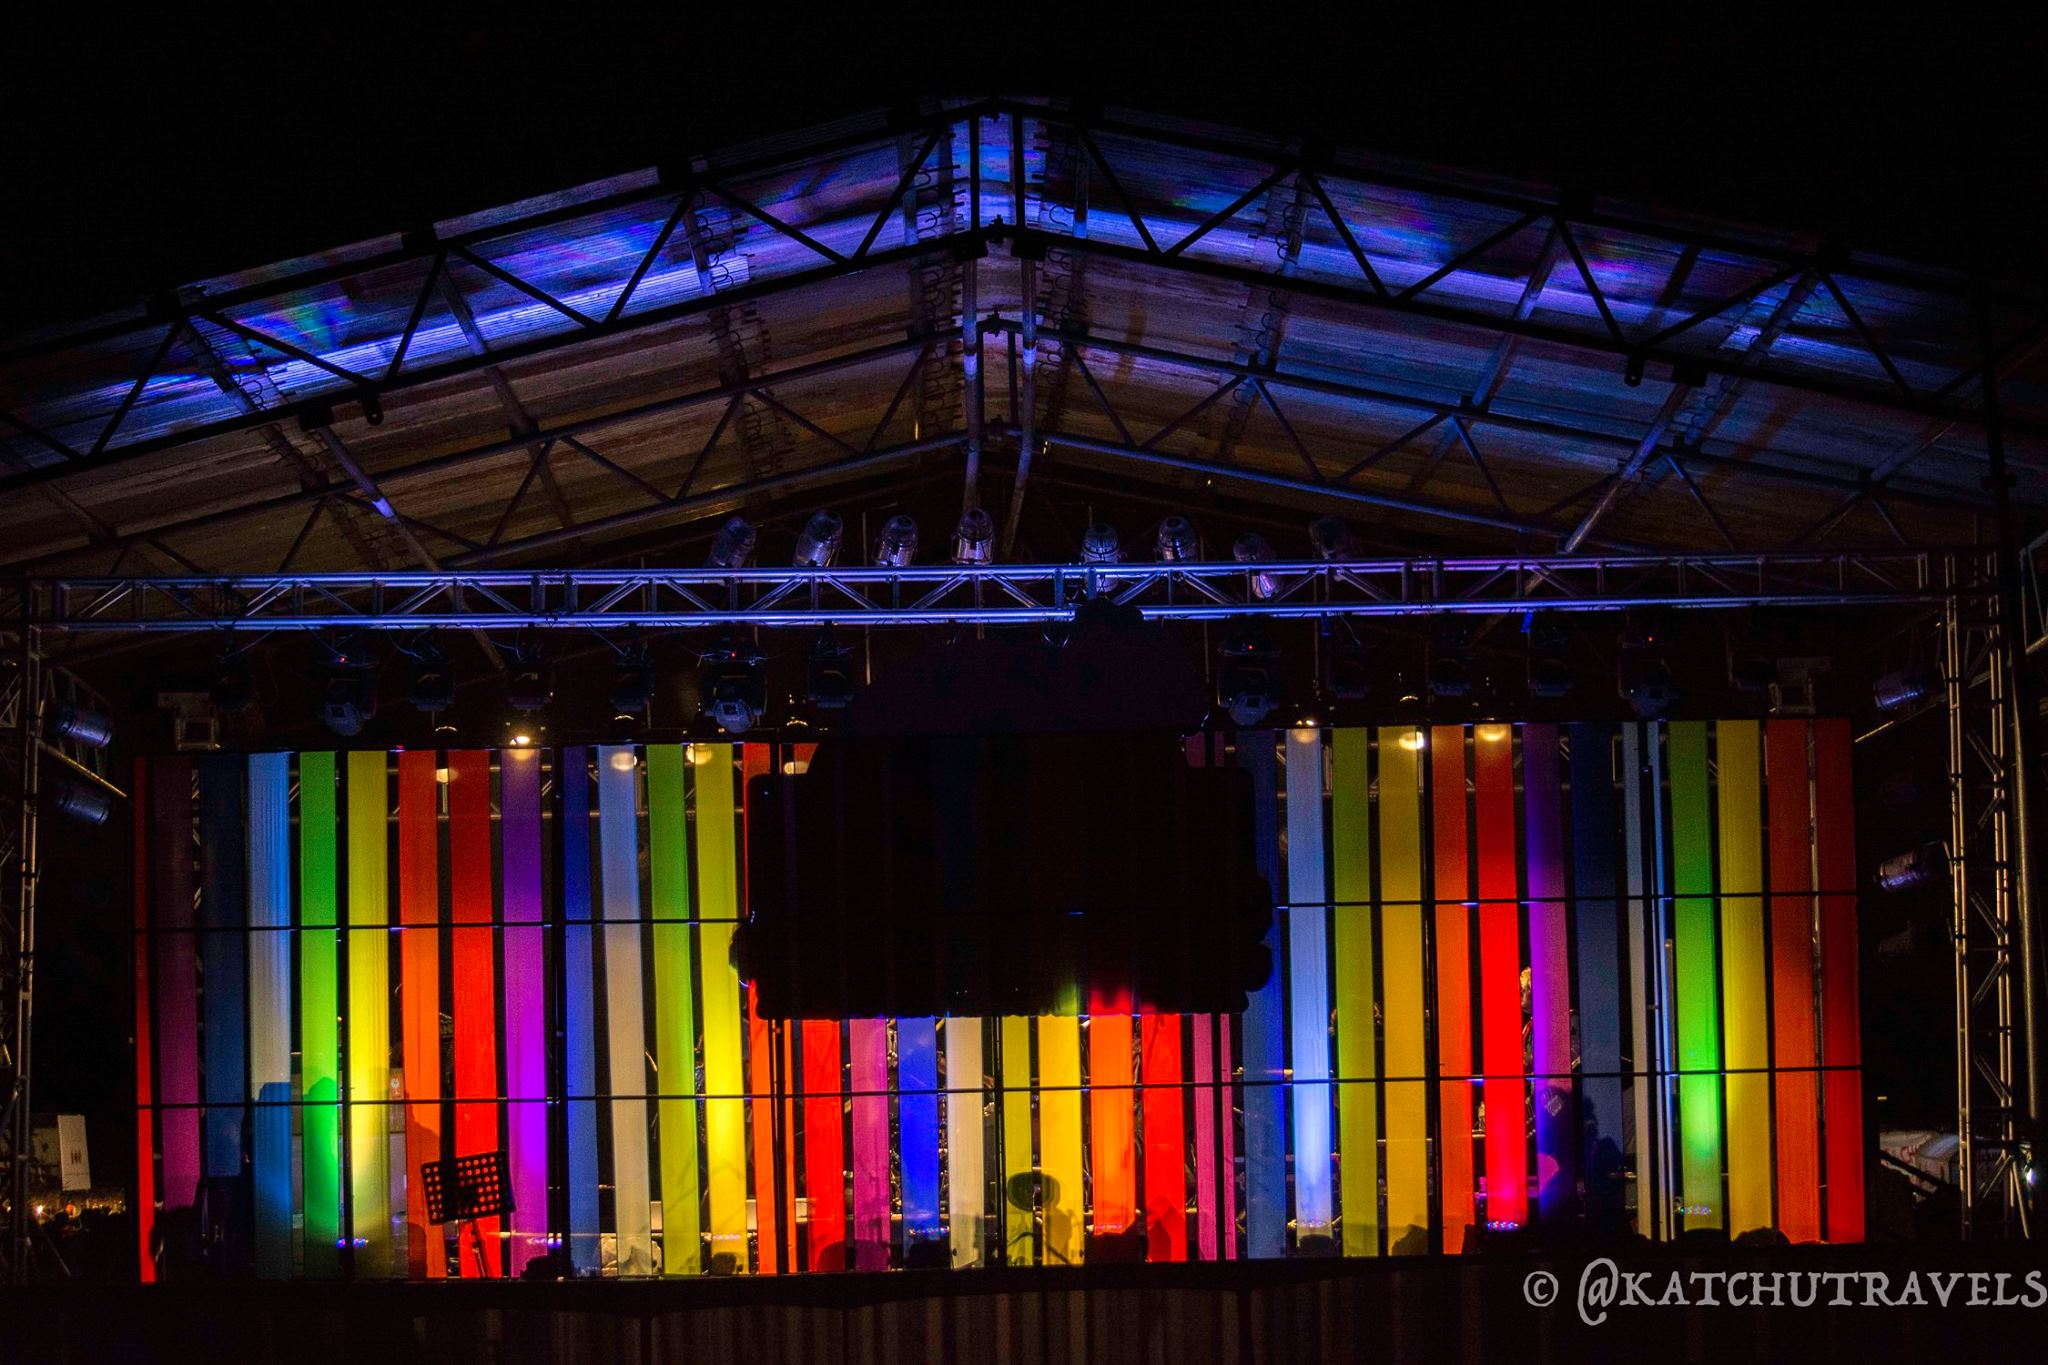 Backview of the Stage at the Covelong Music Festival